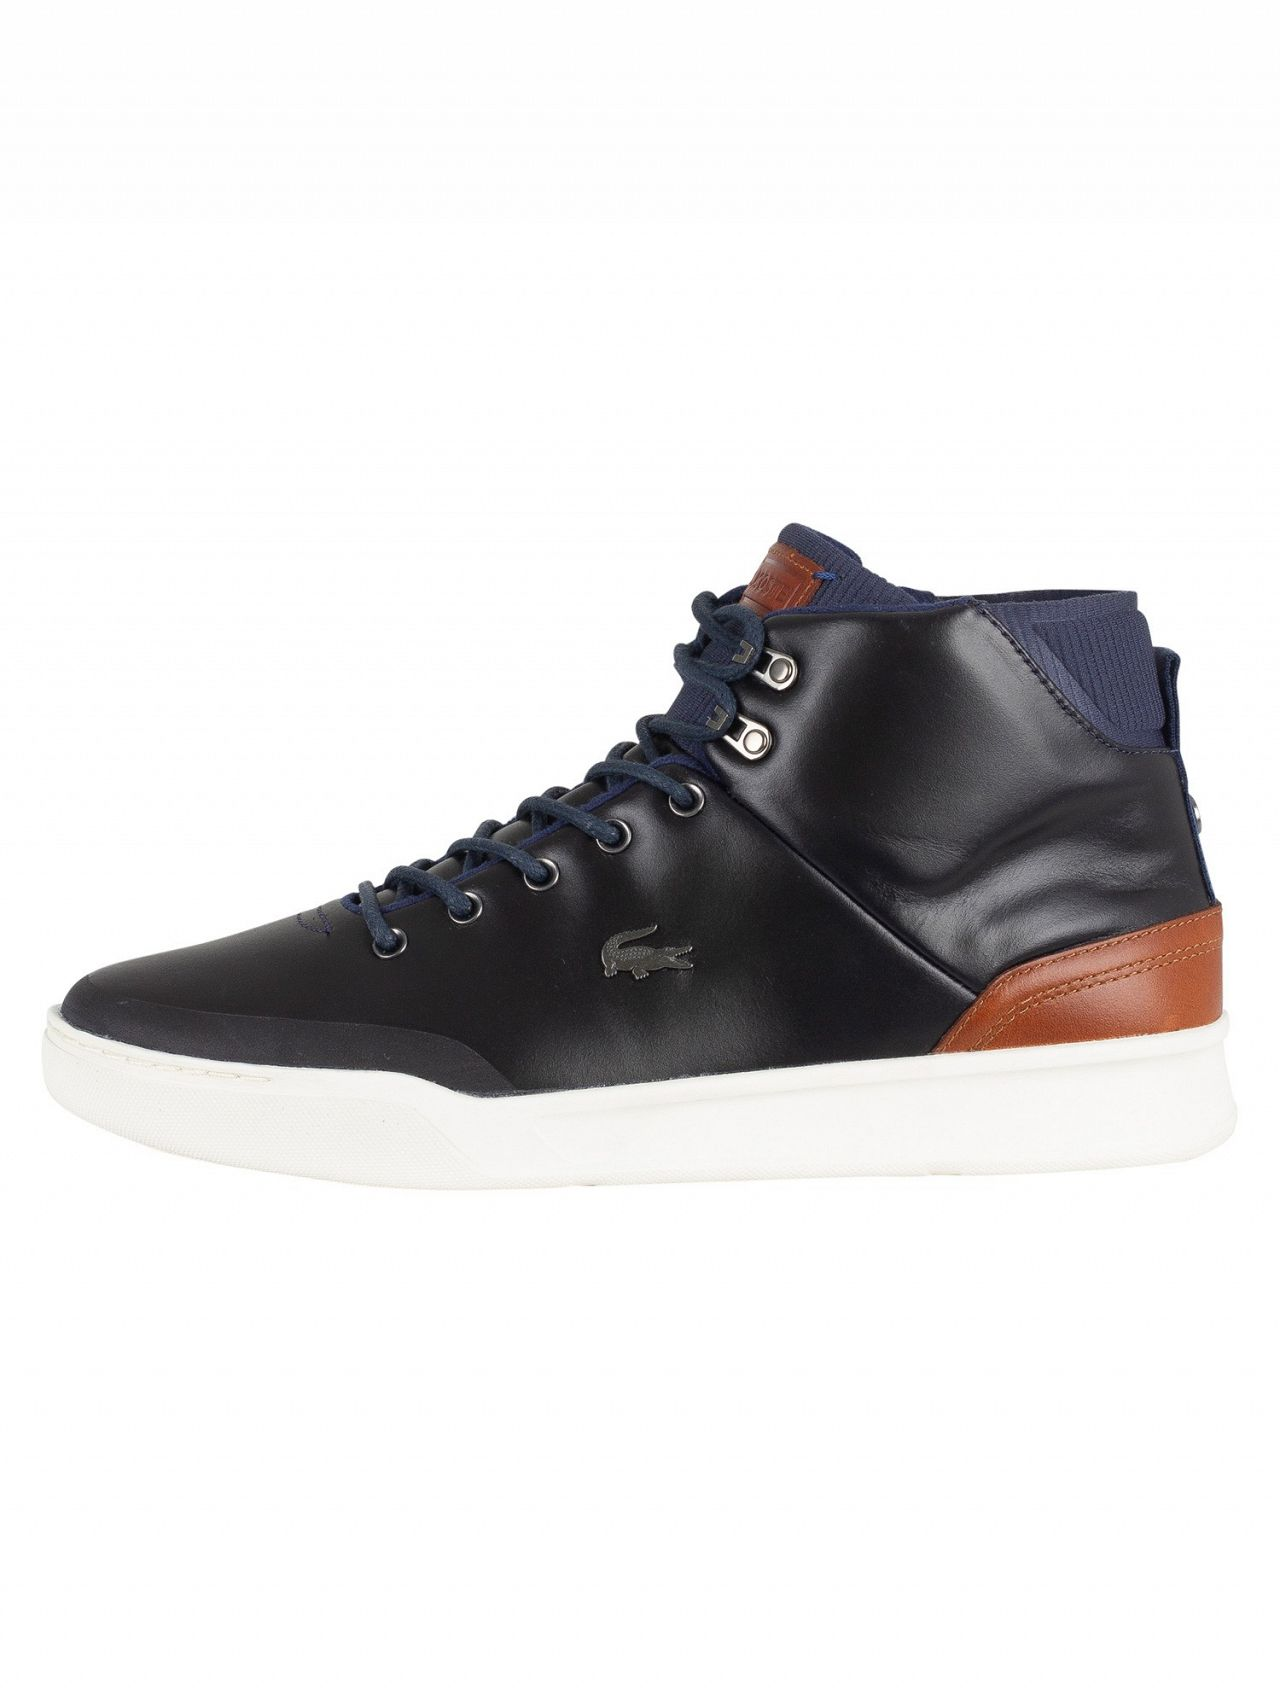 a88b6afbacb9b3 Lacoste Navy Brown Explorateur Classic 318 1 CAM Leather Trainers ...